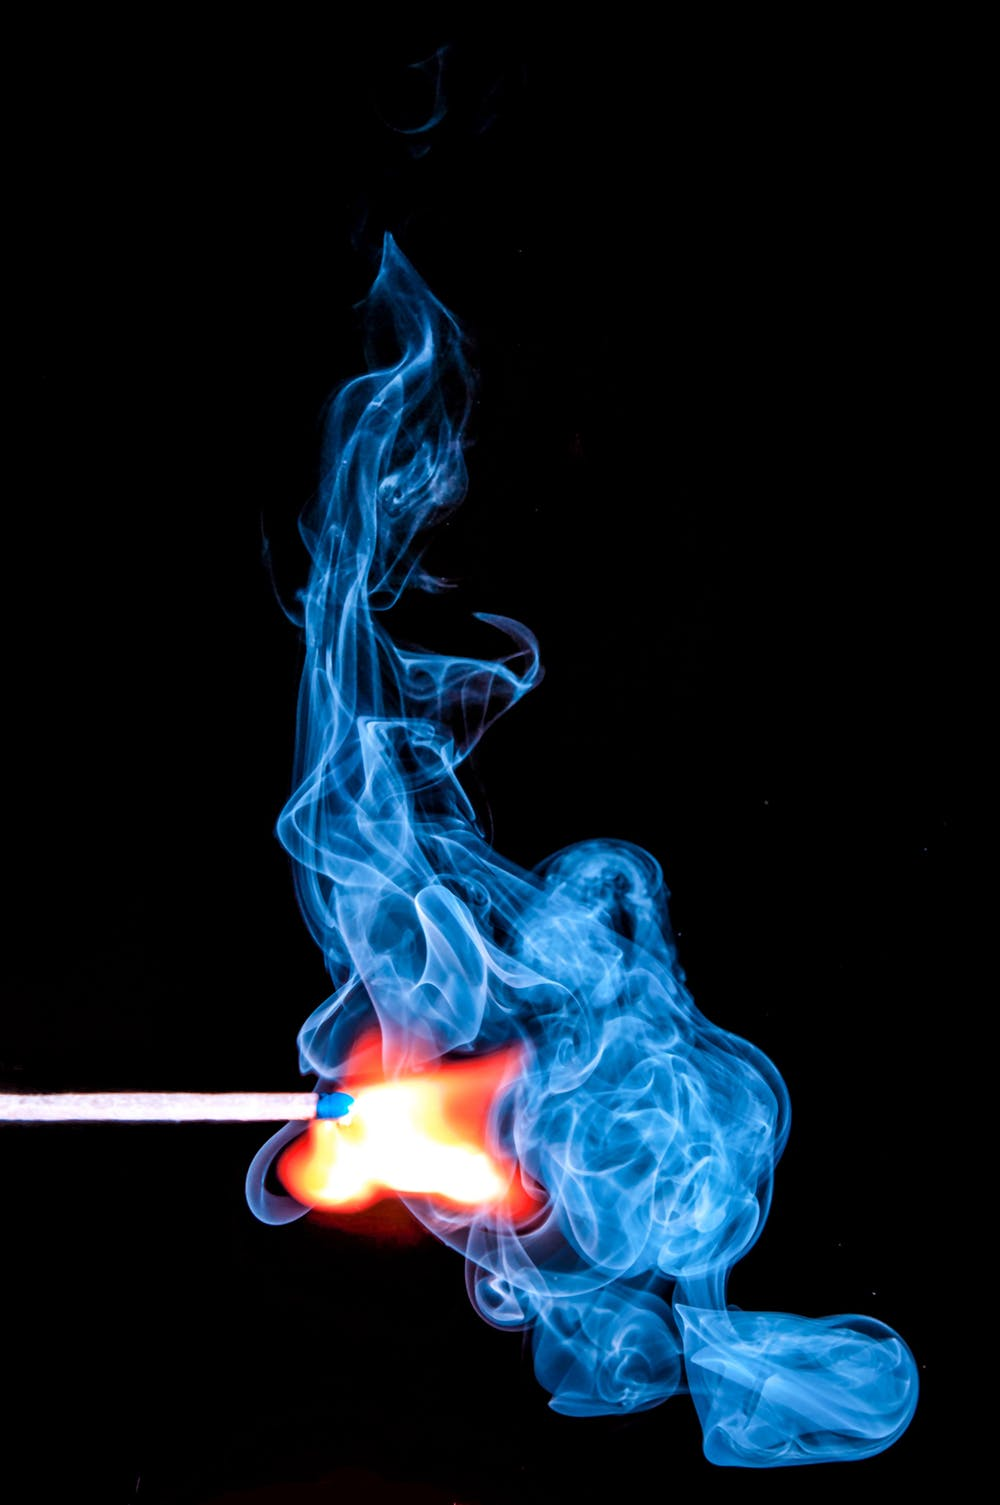 matchstick on fire with red and blue flames.